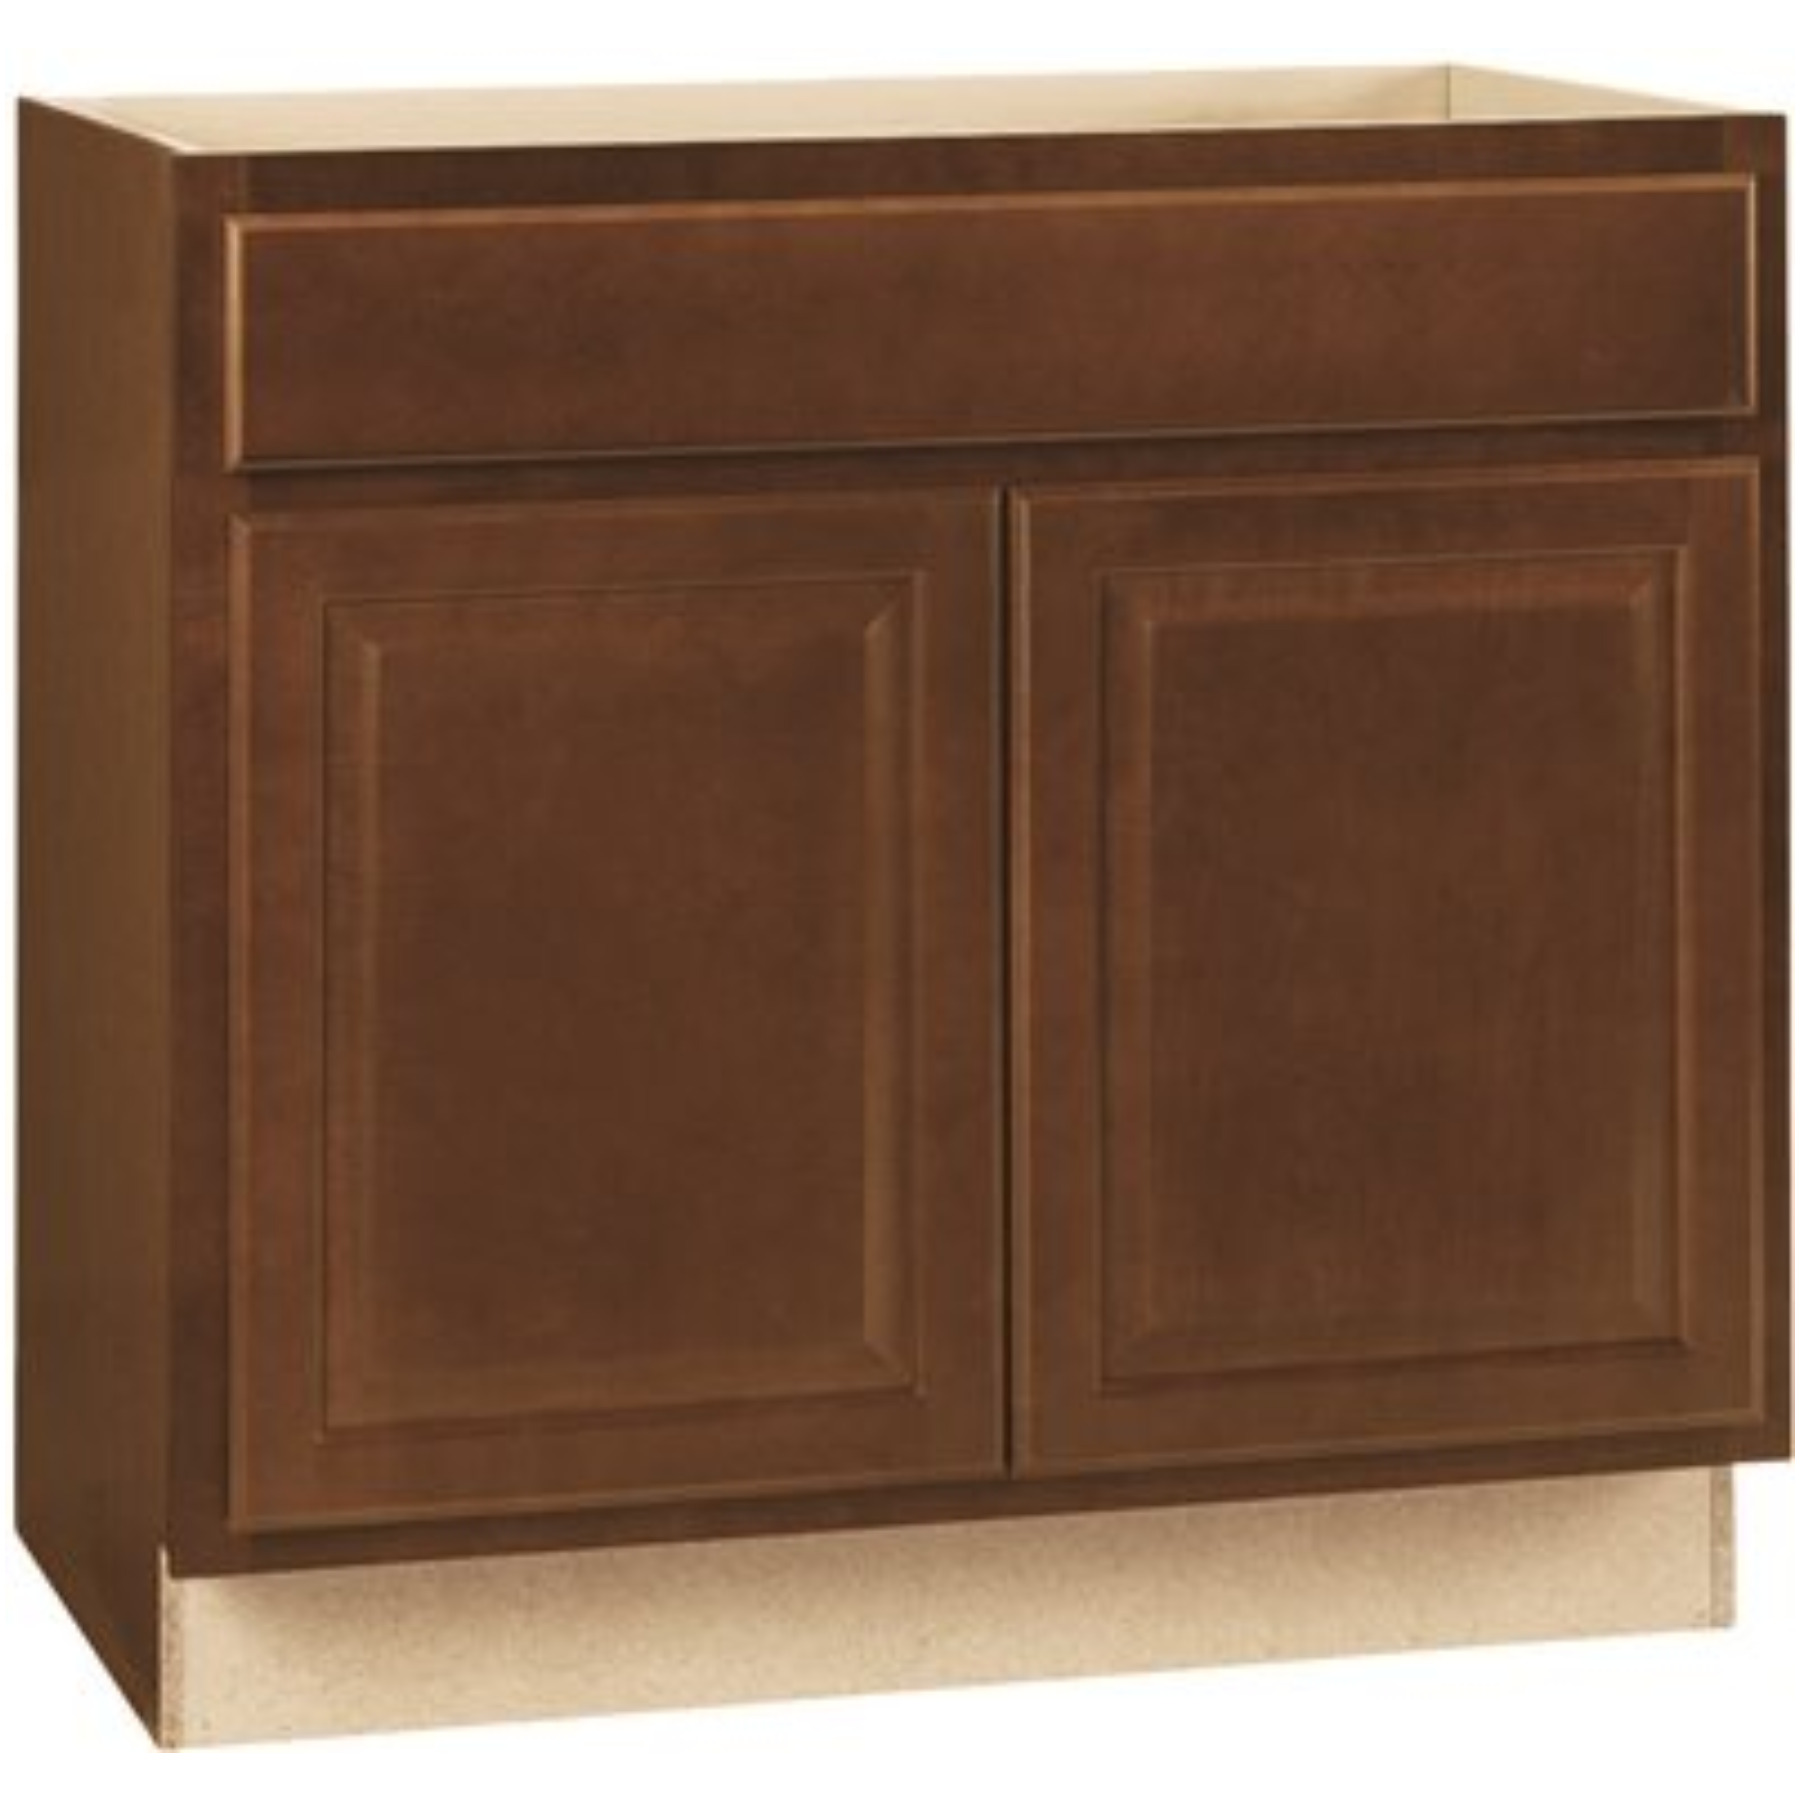 RSI HOME PRODUCTS HAMILTON BASE CABINET, FULLY ASSEMBLED, RAISED PANEL, CAFE, 36X34-1/2X24 IN.